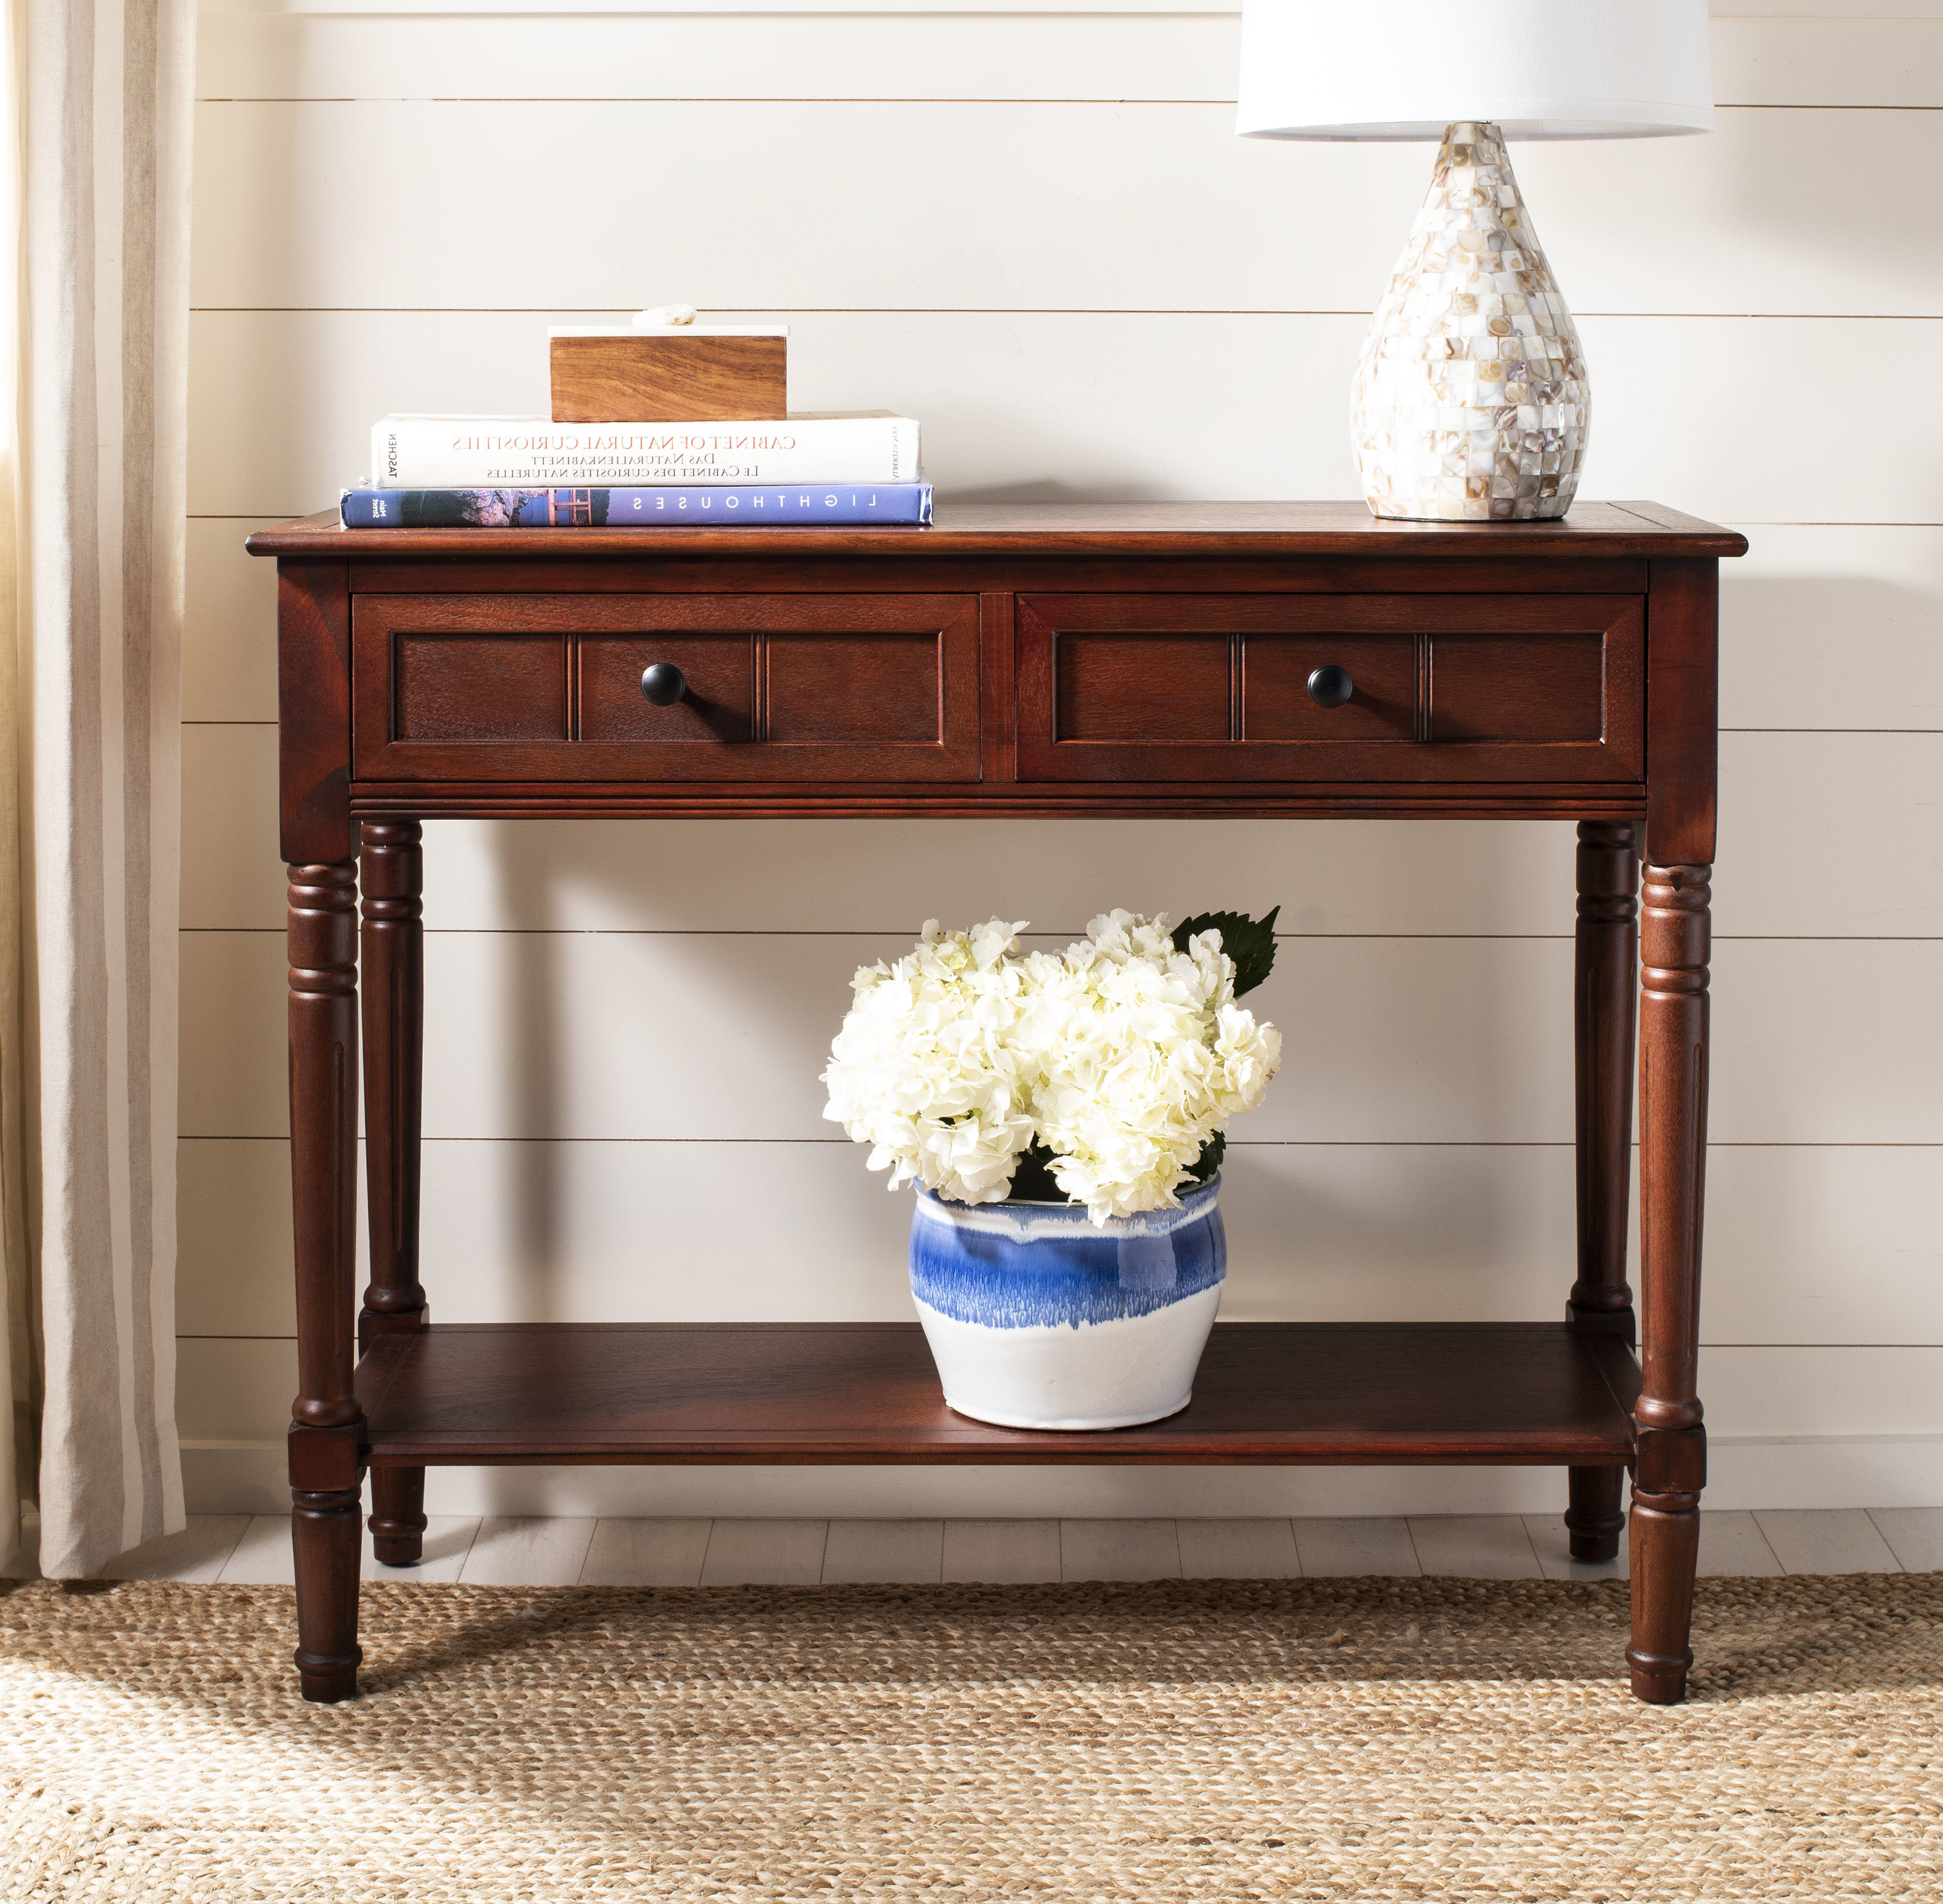 Console Table With 2 Shelves | Wayfair With Natural Wood Mirrored Media Console Tables (View 15 of 20)